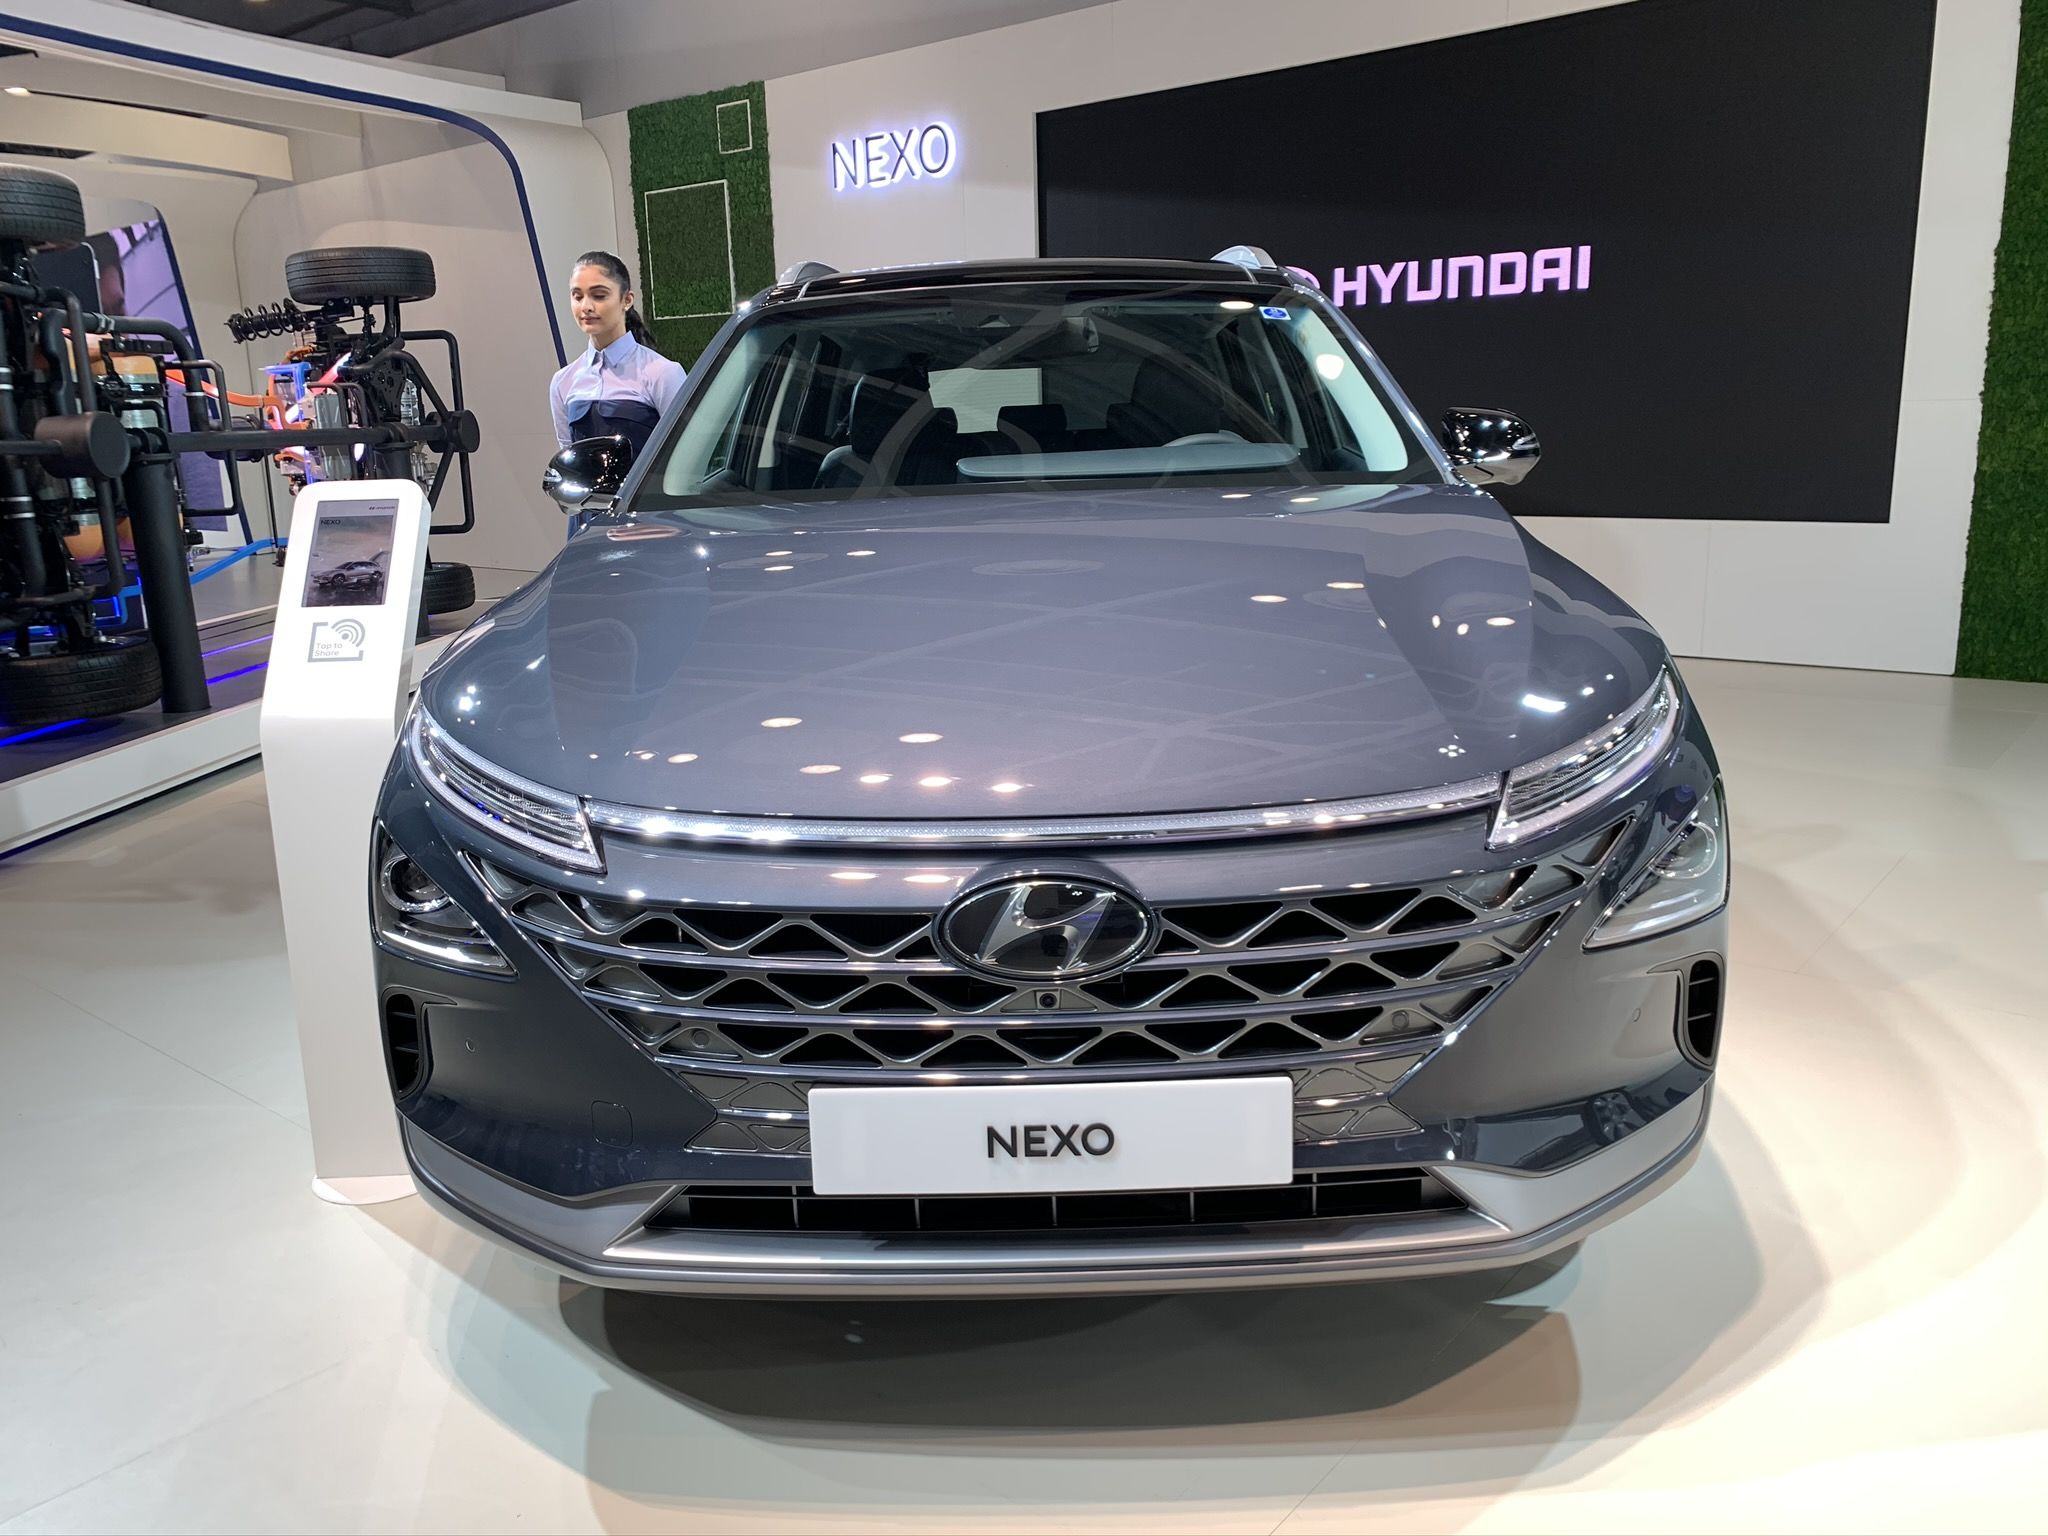 Hyundai Nexo: The South Korean carmaker displayed Nexo, its Hydrogen fuel cell electric vehicle at Auto Expo 2020. It is company's way of presenting an alternate technology for cleaner vehicles in the future. Hyundai said the Nexo filters air while driving, and the only byproduct is water.